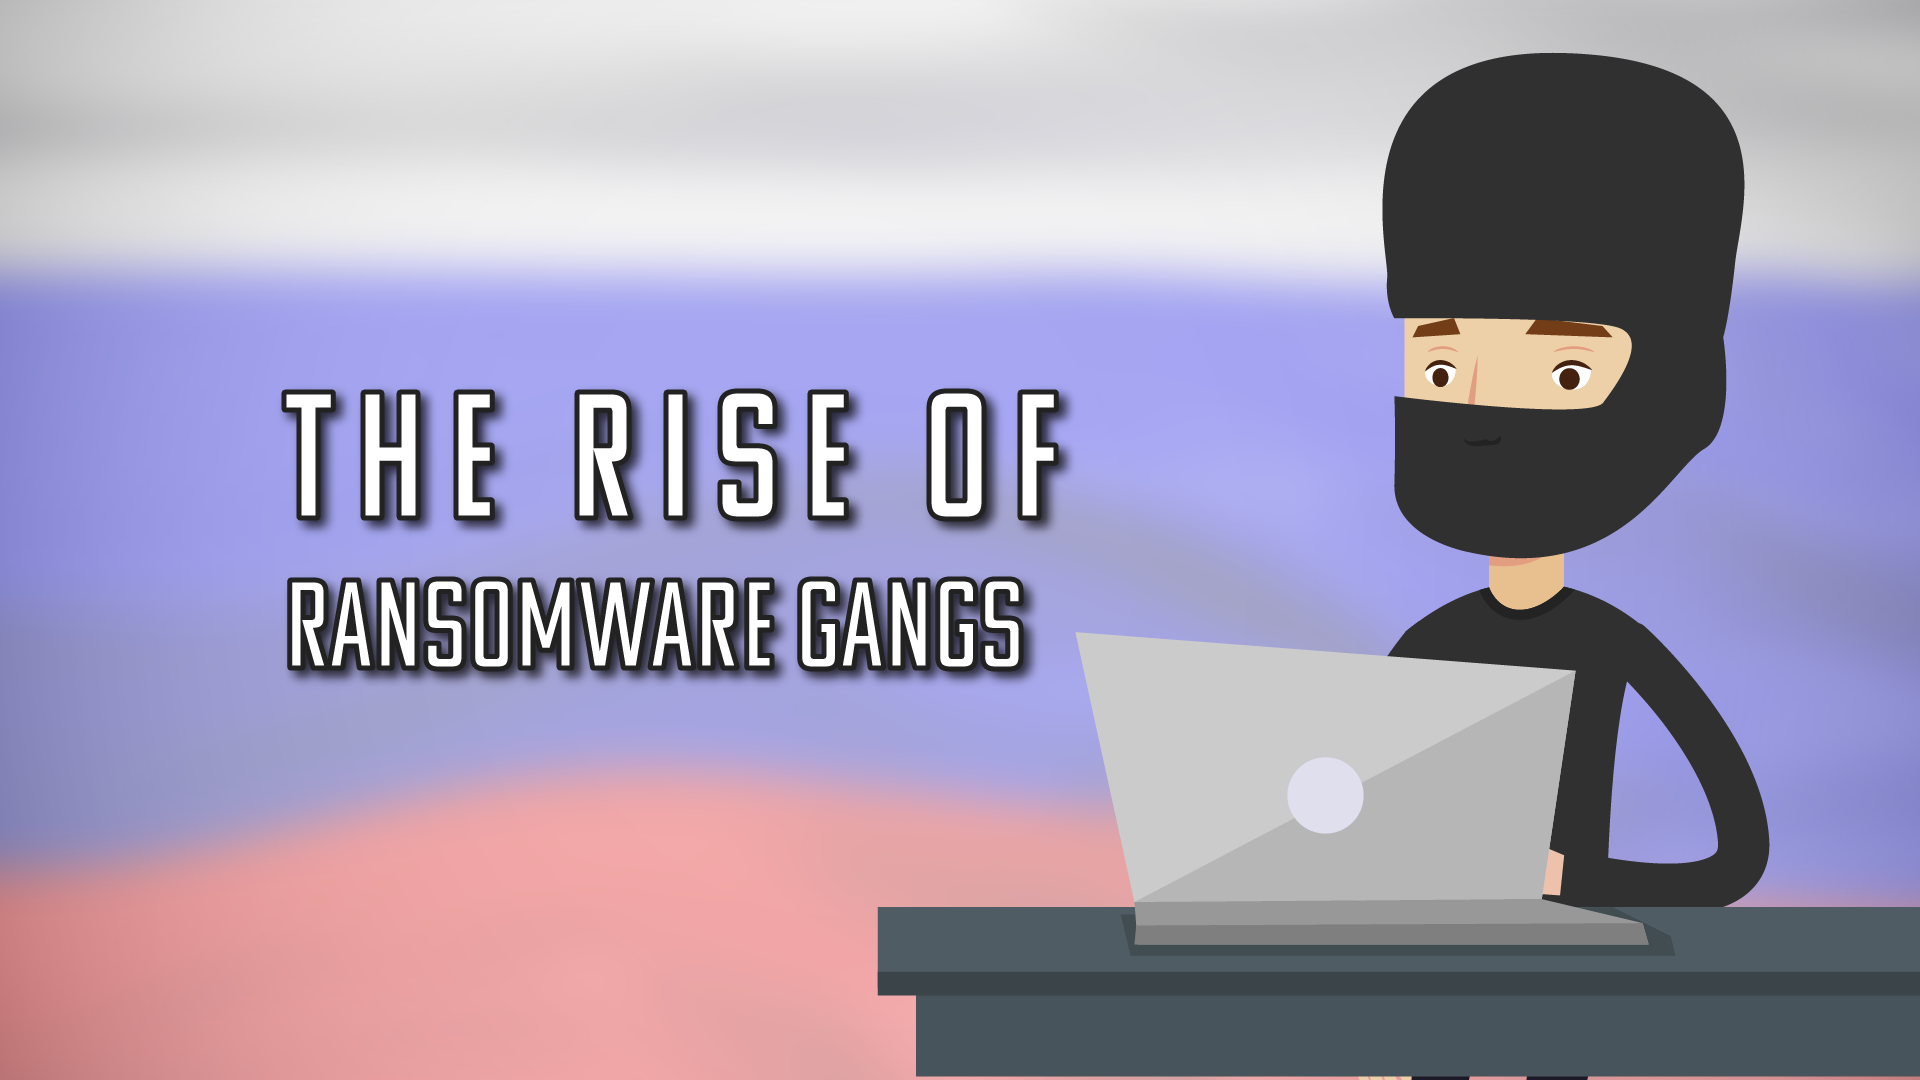 Ransomware Gangs: Who's Behind the Rise in Ransomware Attacks?